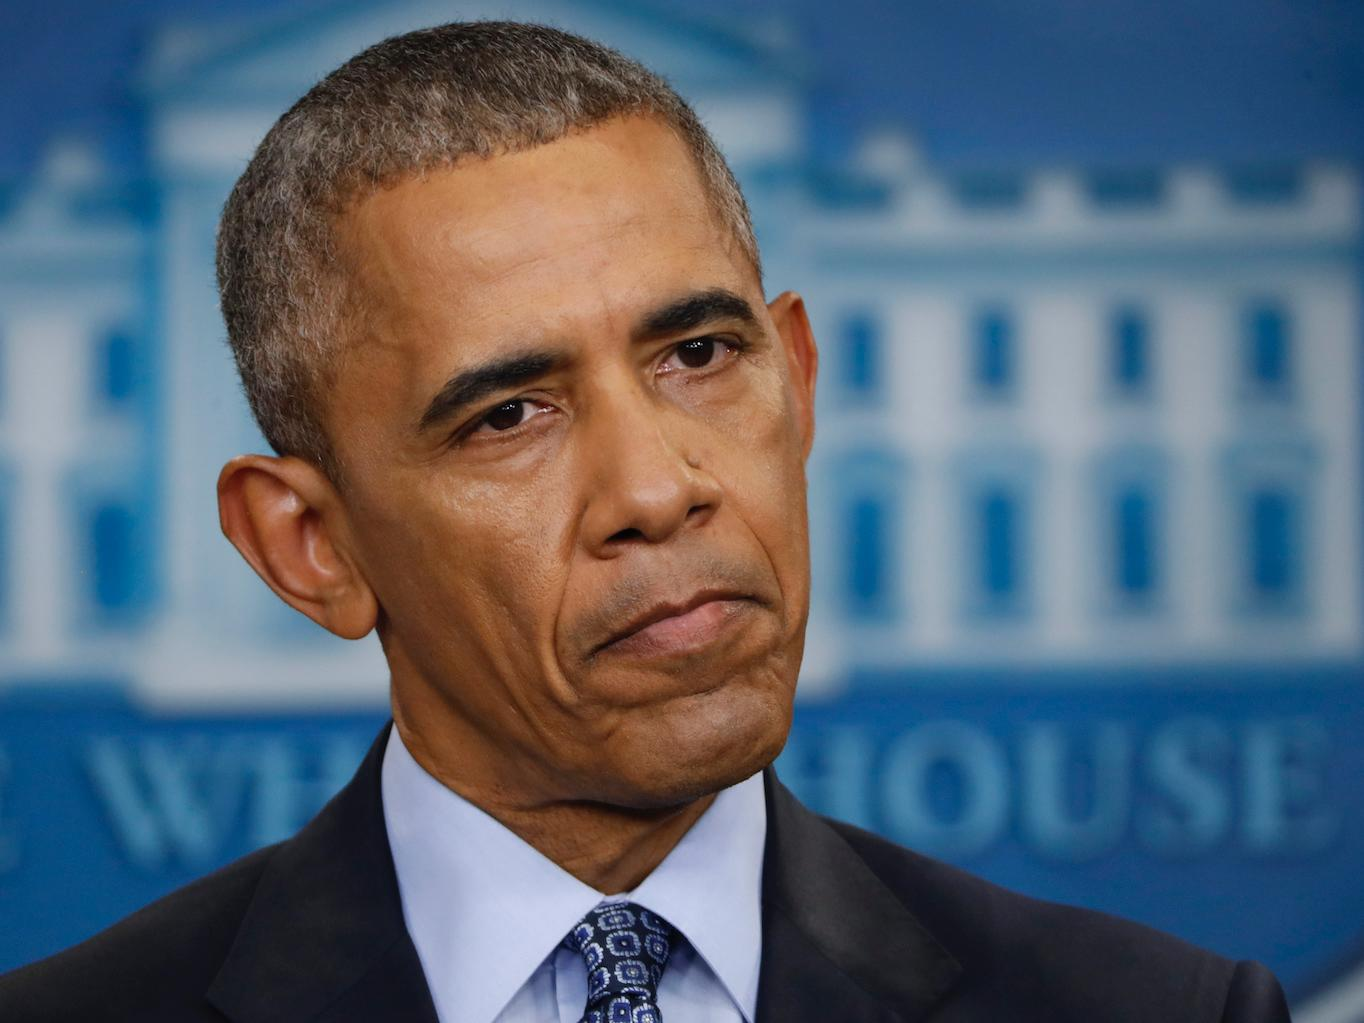 Obama declines to comment on Democrats boycotting Trump's inauguration: 'All I know is I'm going to be there'